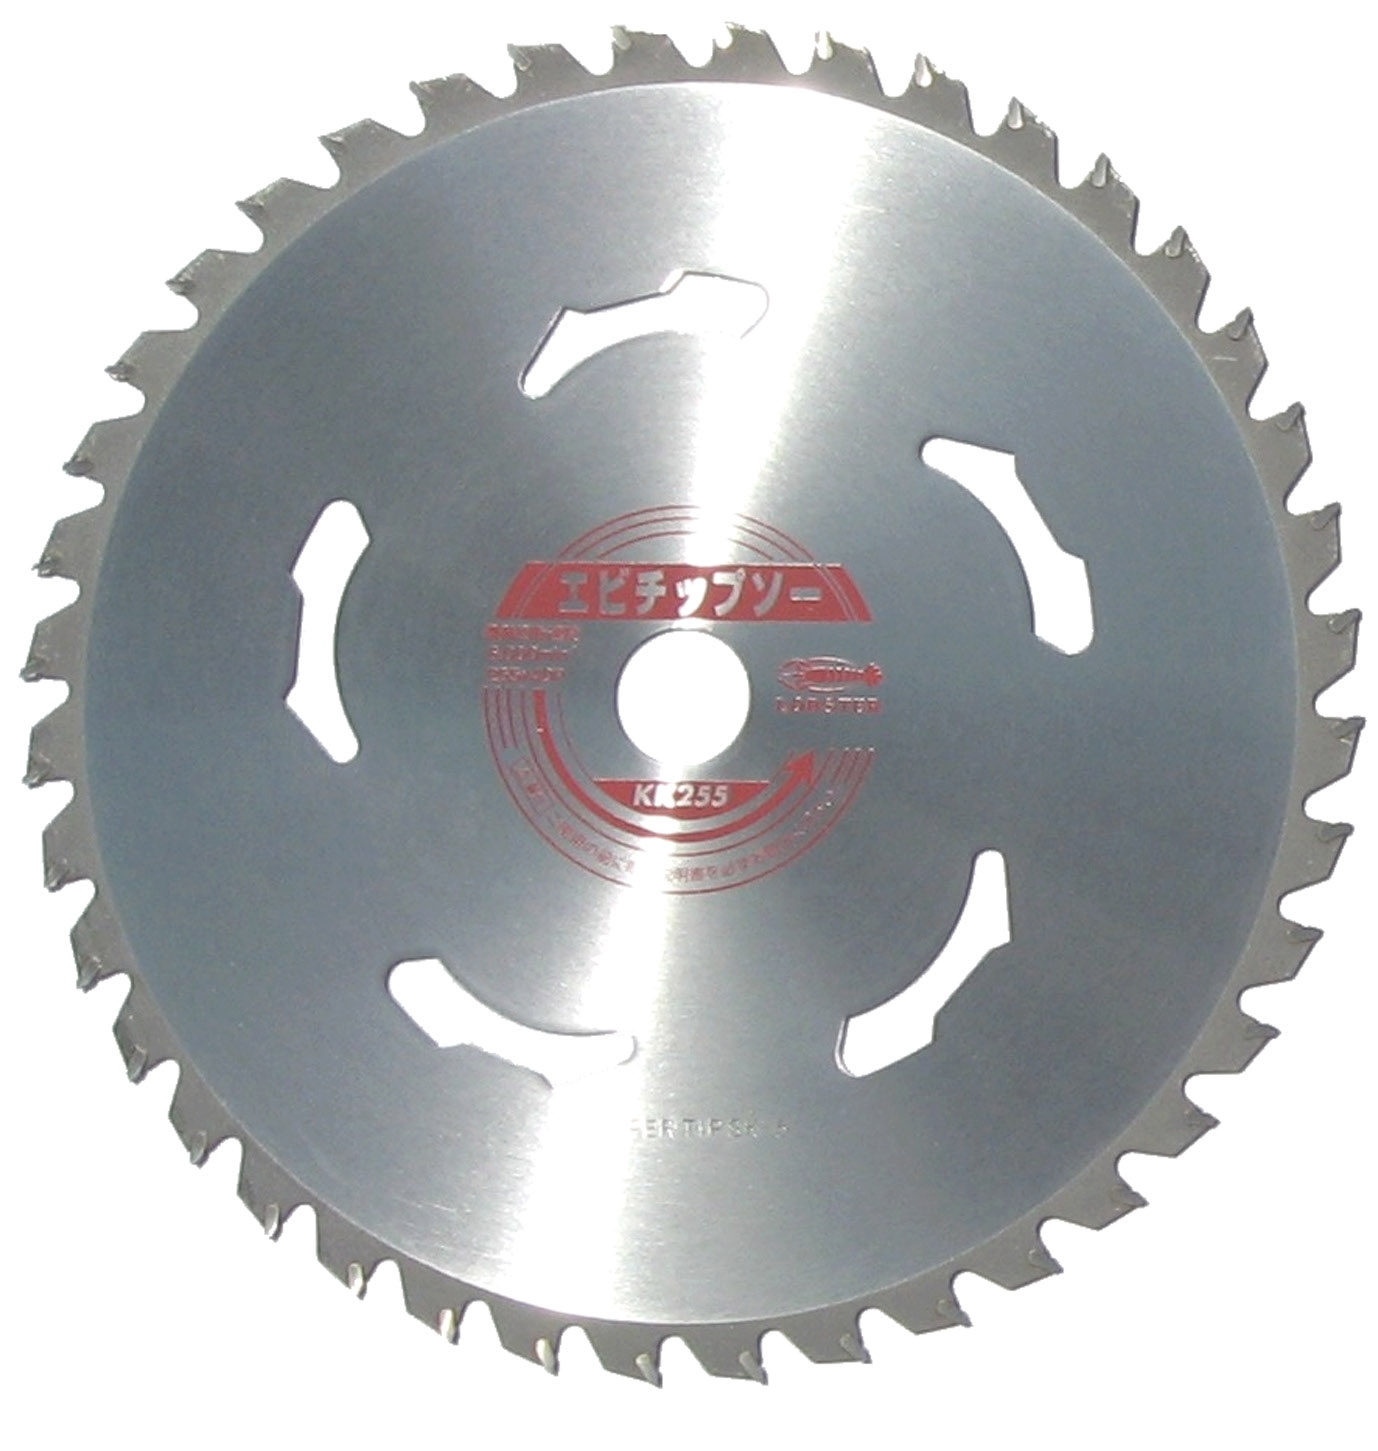 Dedicated carbide tipped saw for mower KK Standard type